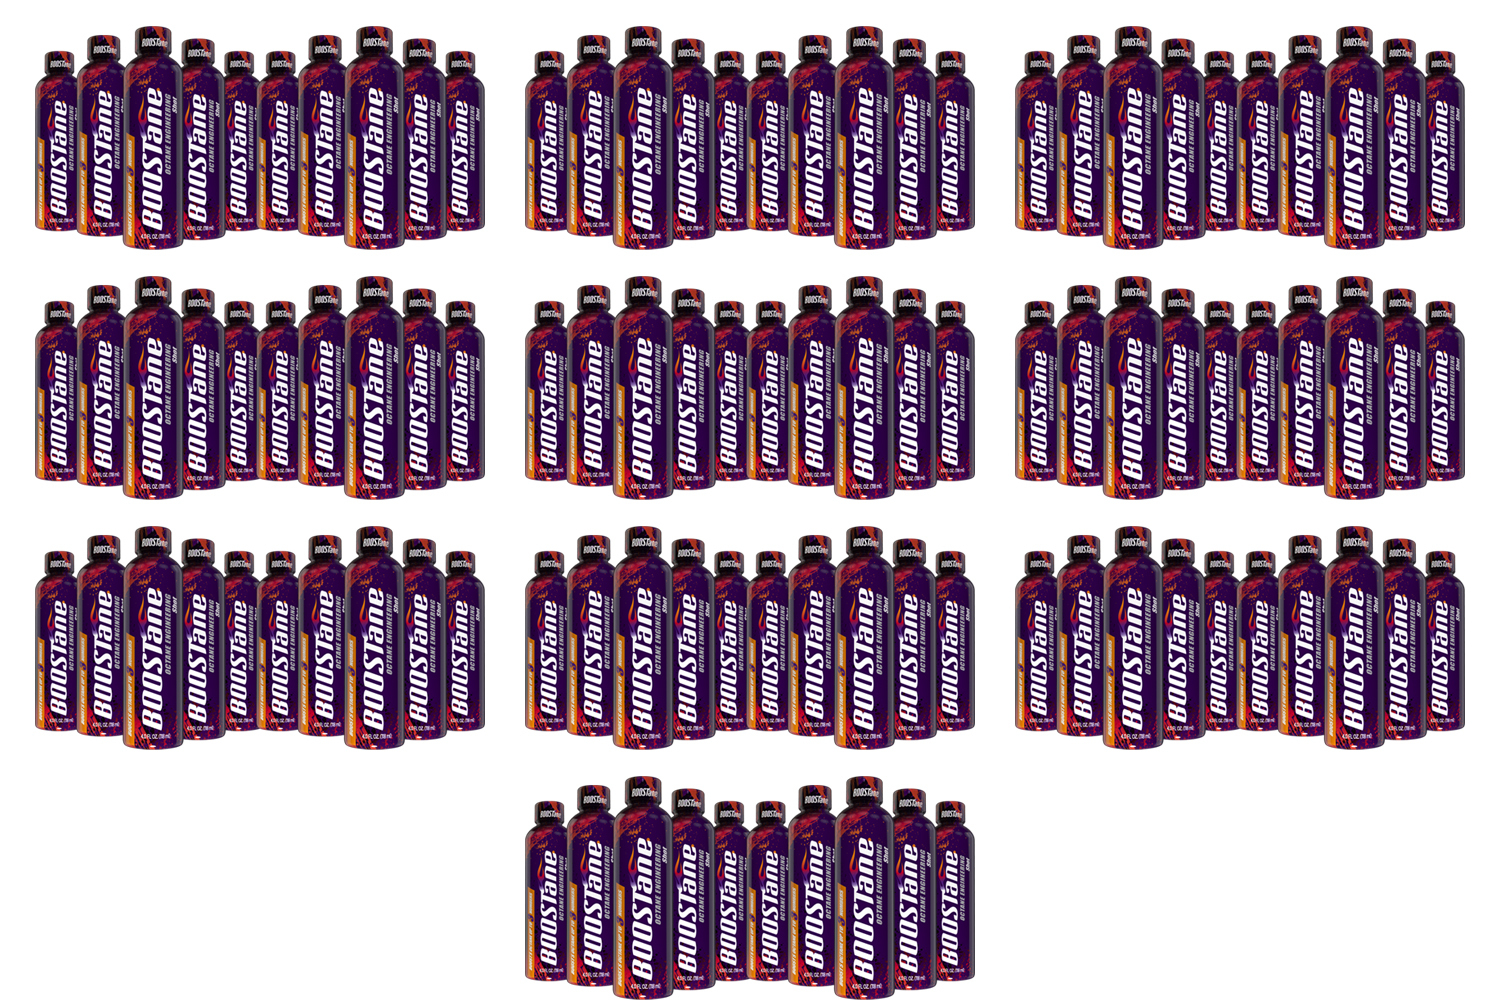 Shot-Octane Boost Case 100 x 4oz Bottles